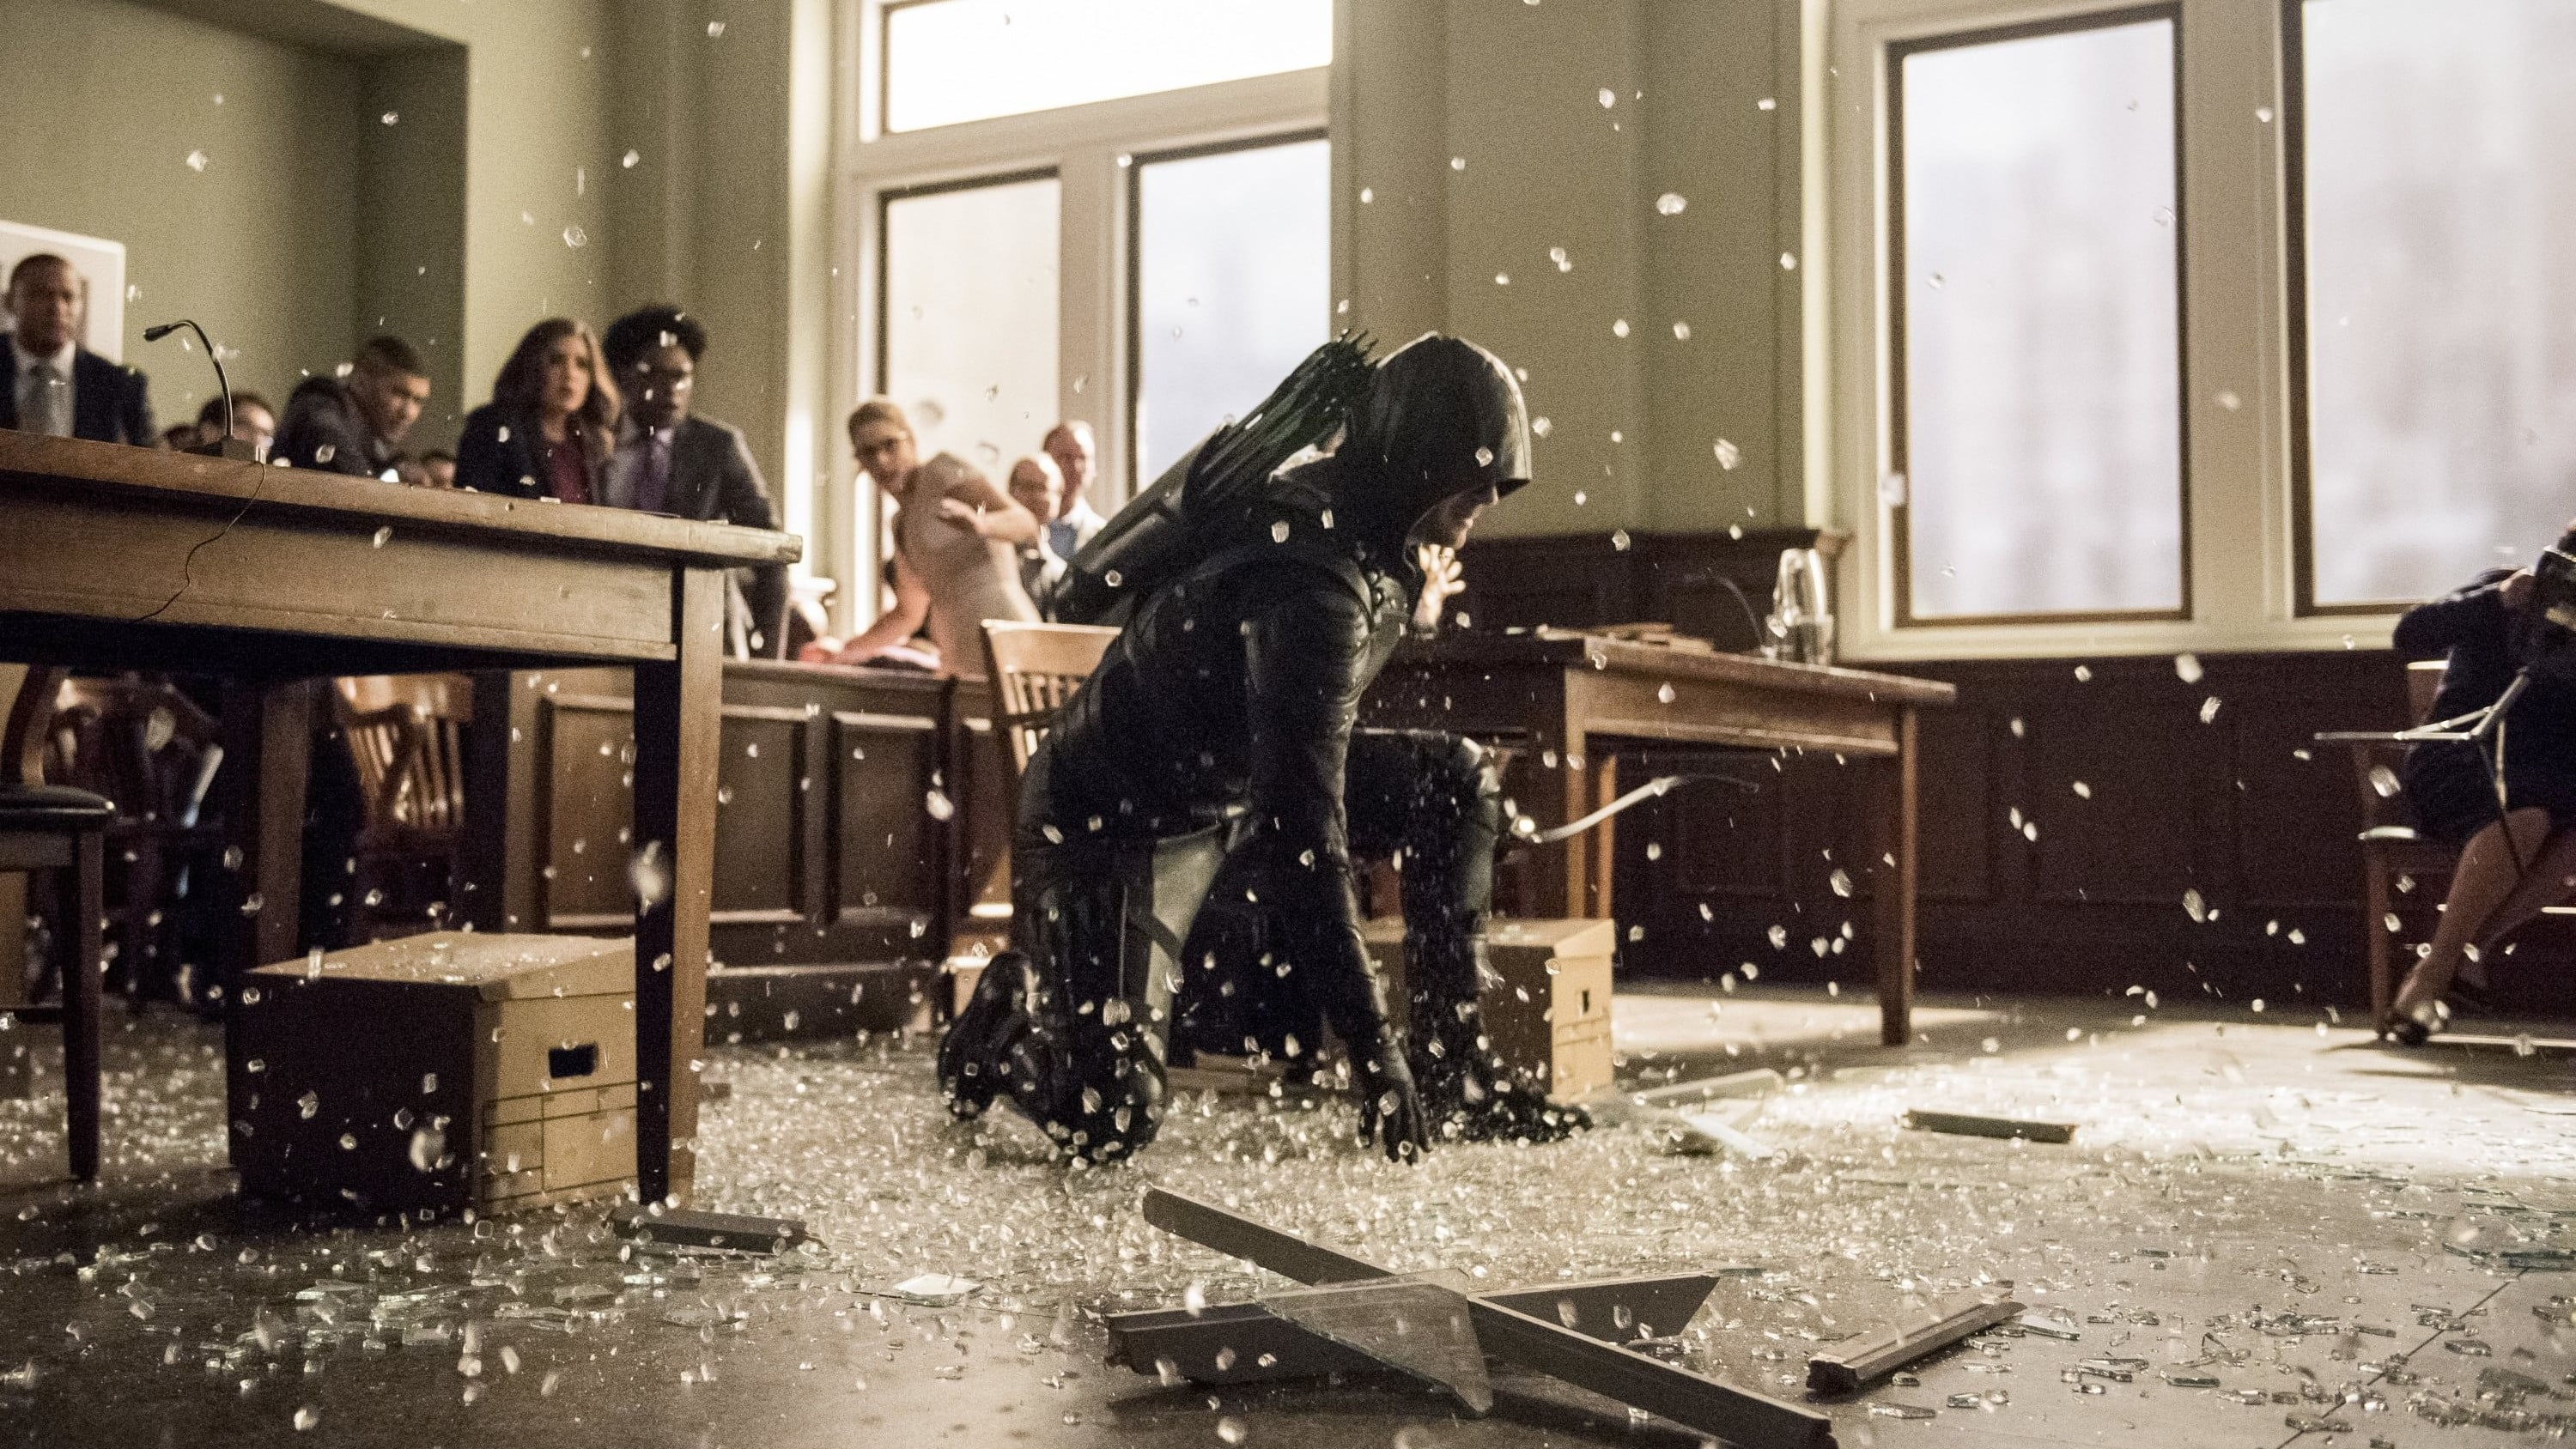 Arrow - Season 6 Episode 21 : Docket No. 11-19-41-73